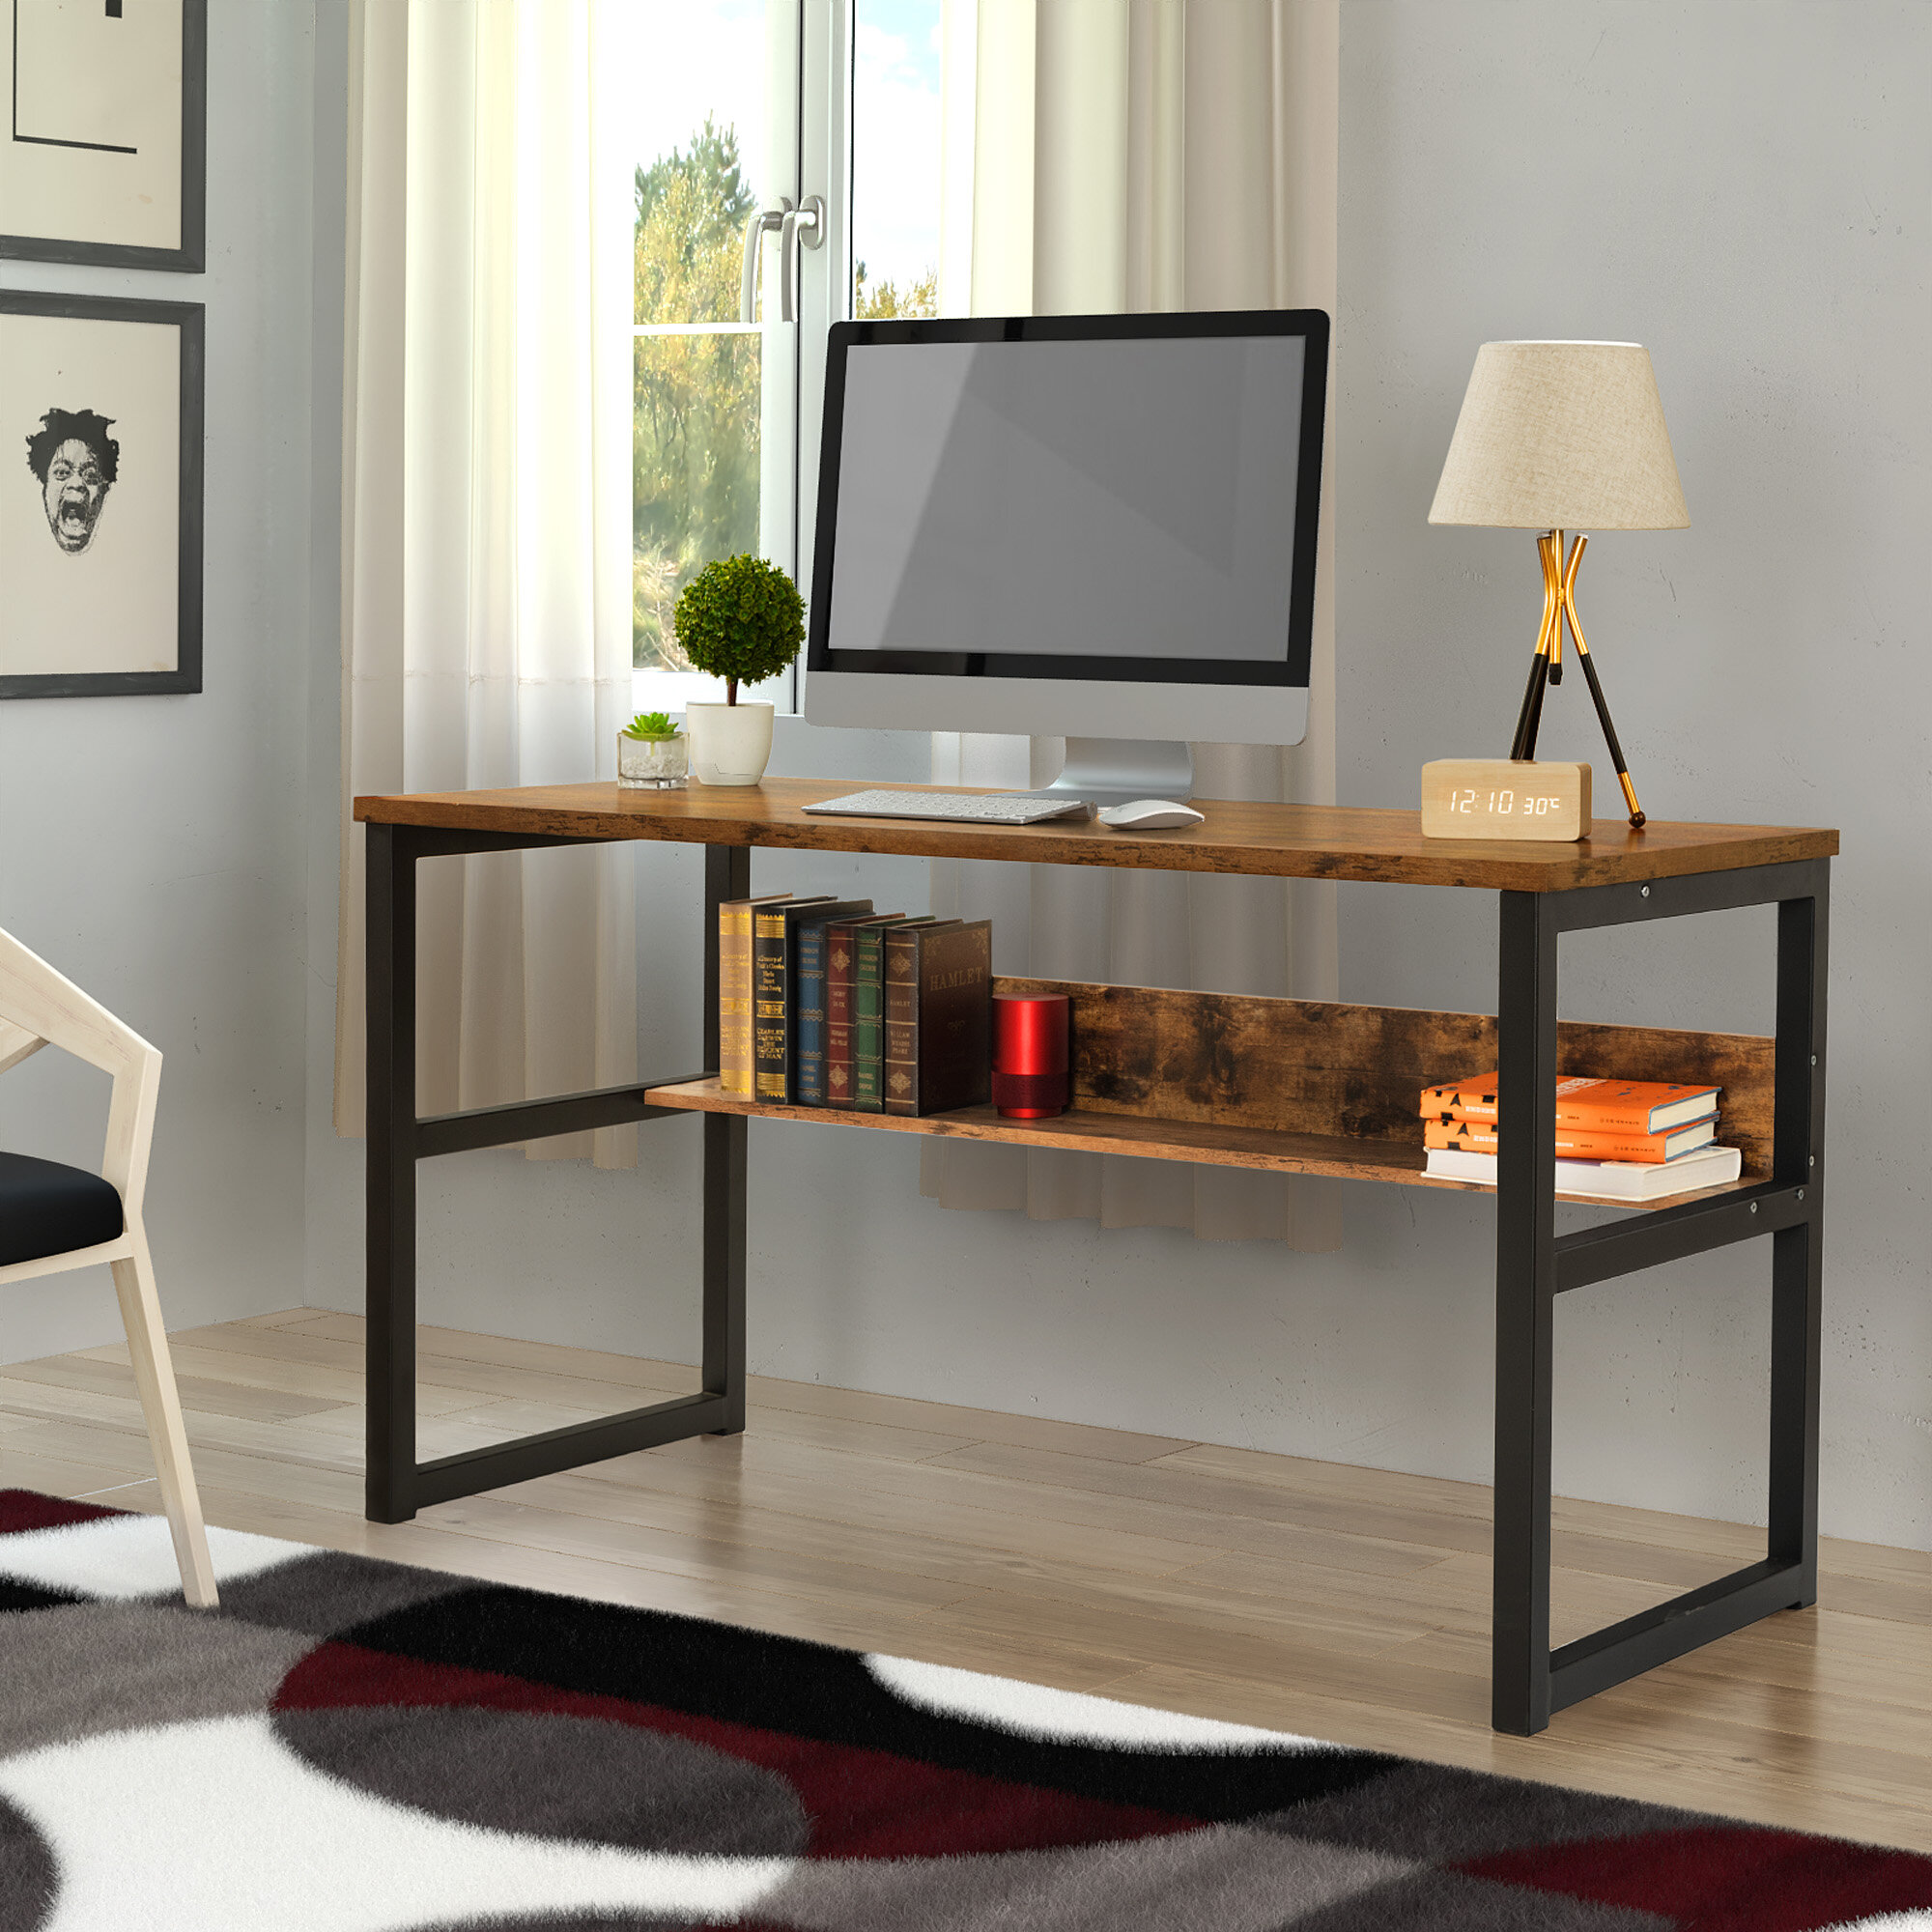 """33.33"""" Computer Desk With Bookshelf, Modern Office Desk With Storage  Shelves, Large Computer Table, Sturdy Writing Table Workstation For Home  Office,"""